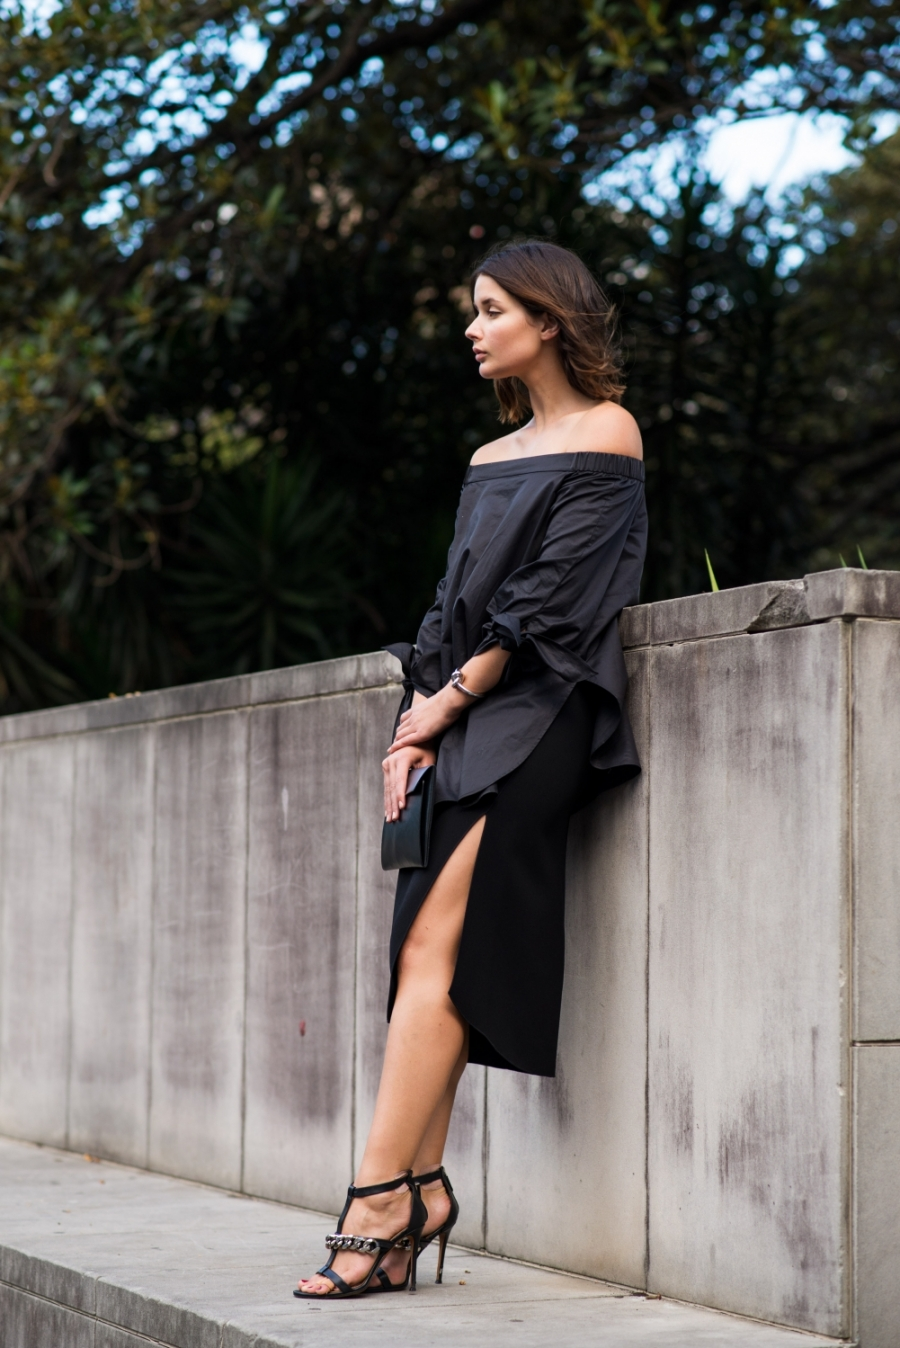 All Black Outfit With Heels: Sara Donaldson is wearing a Tibi over the shoulder black top with a Dion Lee skirt and Givenchy heels